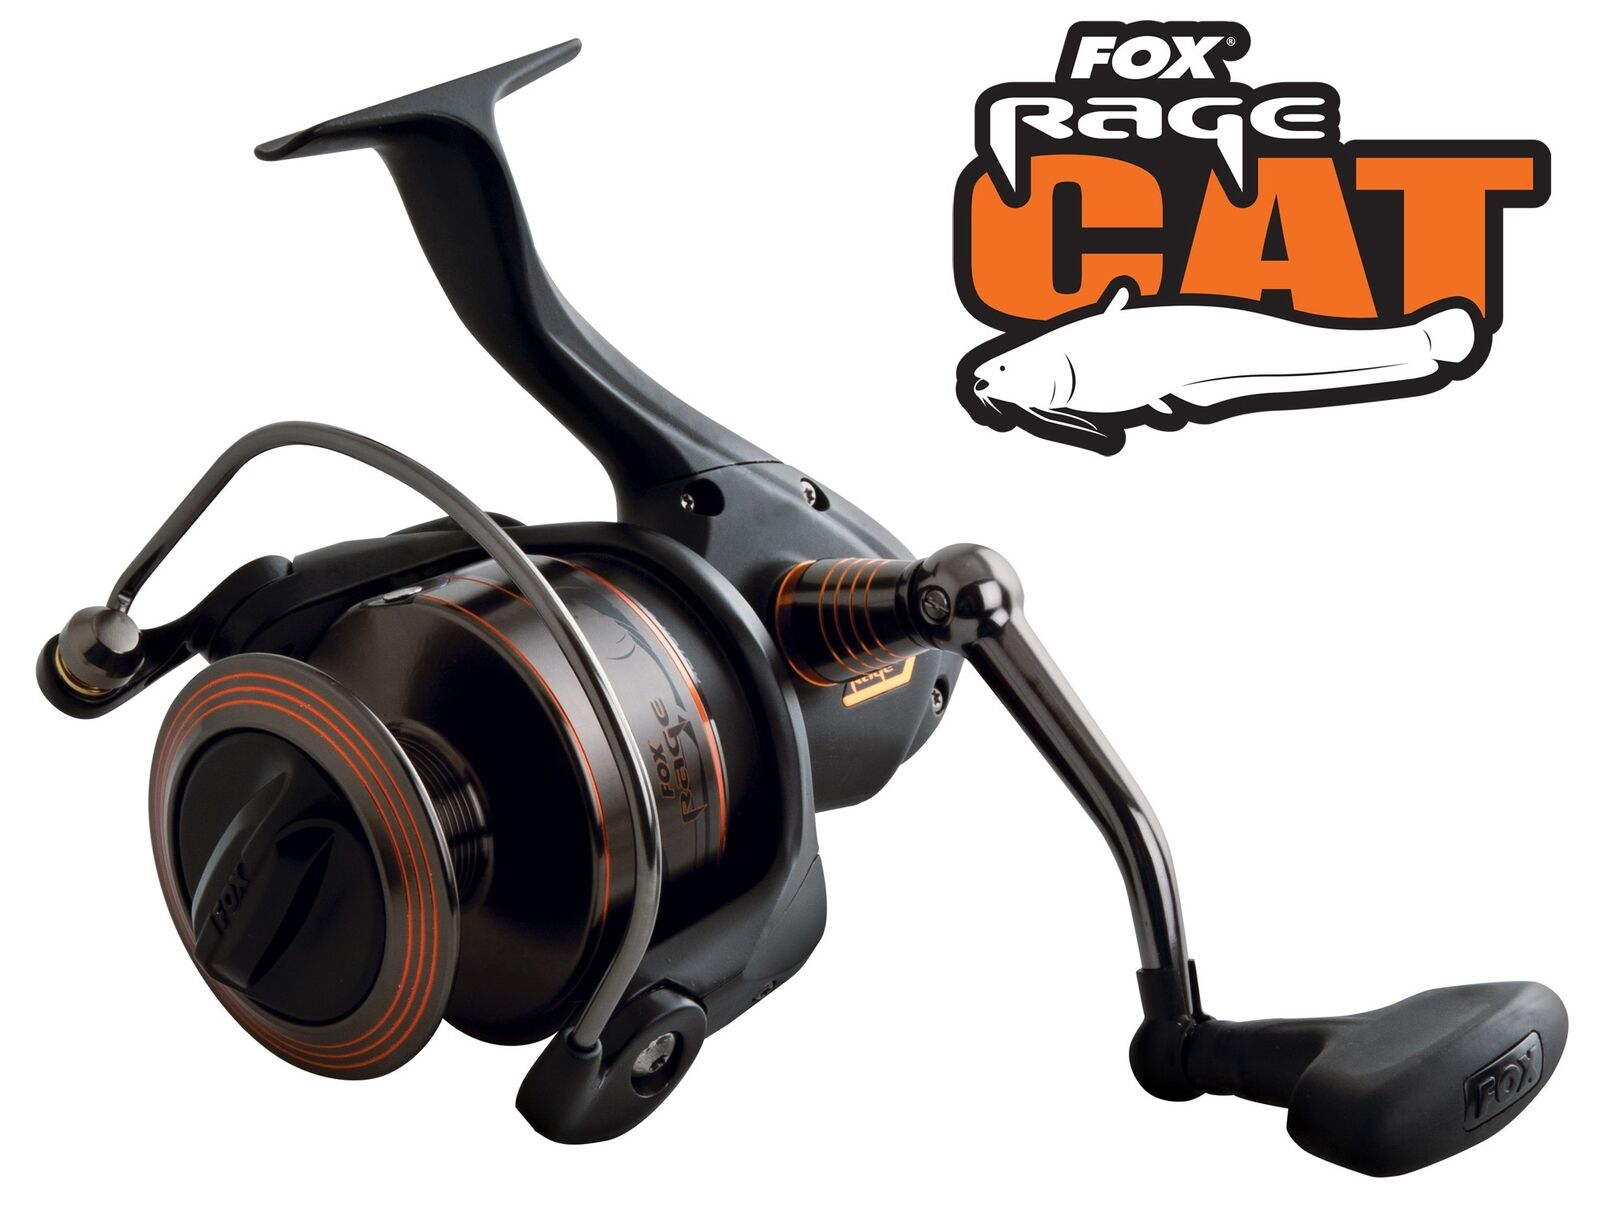 Fox Rage Cat Rolle CR800 Stationärrolle Reel - Wallerrolle, Stationärrolle CR800 zum Welsangeln 92b4d3